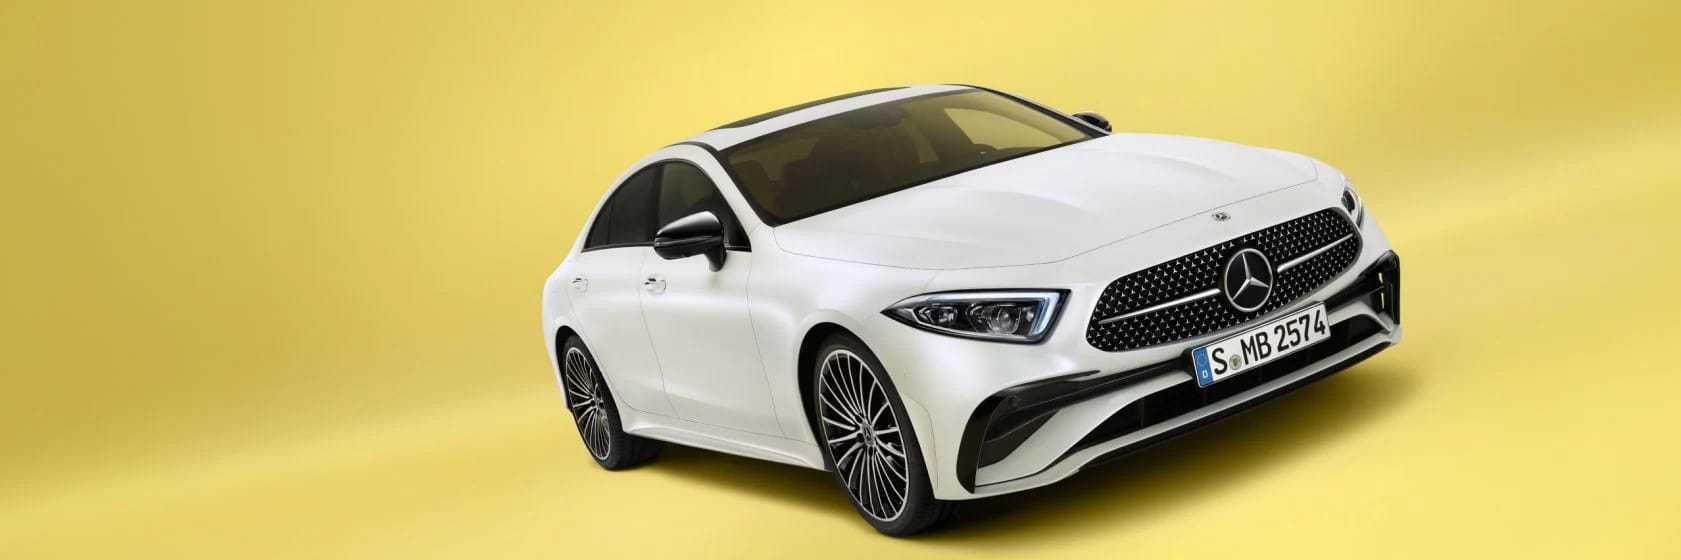 Огляд CLS Coupe 2021